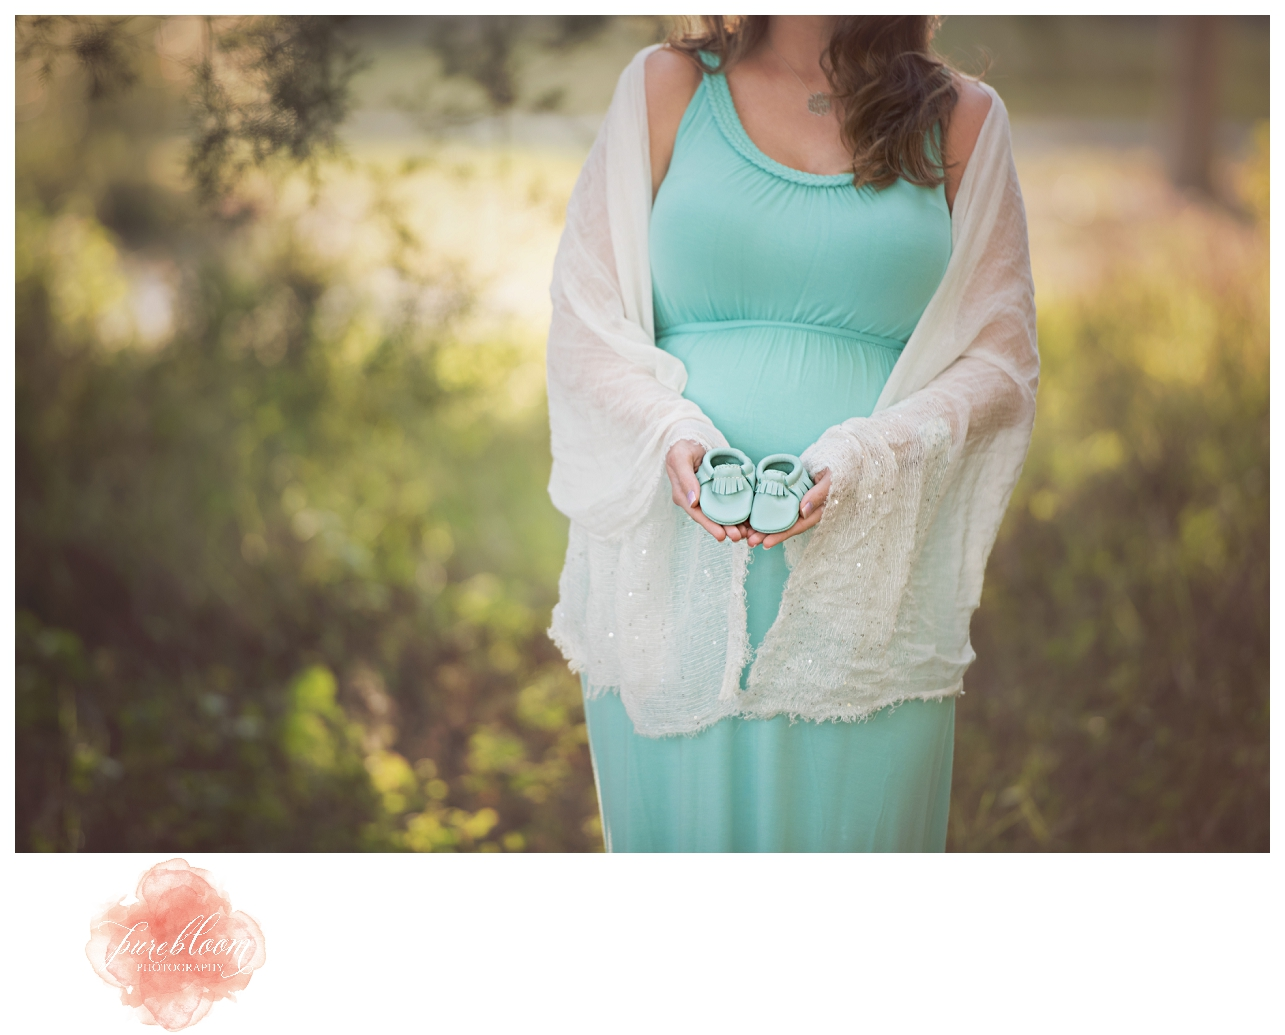 Lisa & Mike Maternity | Pure Bloom Photography | Tampa Maternity Photographer